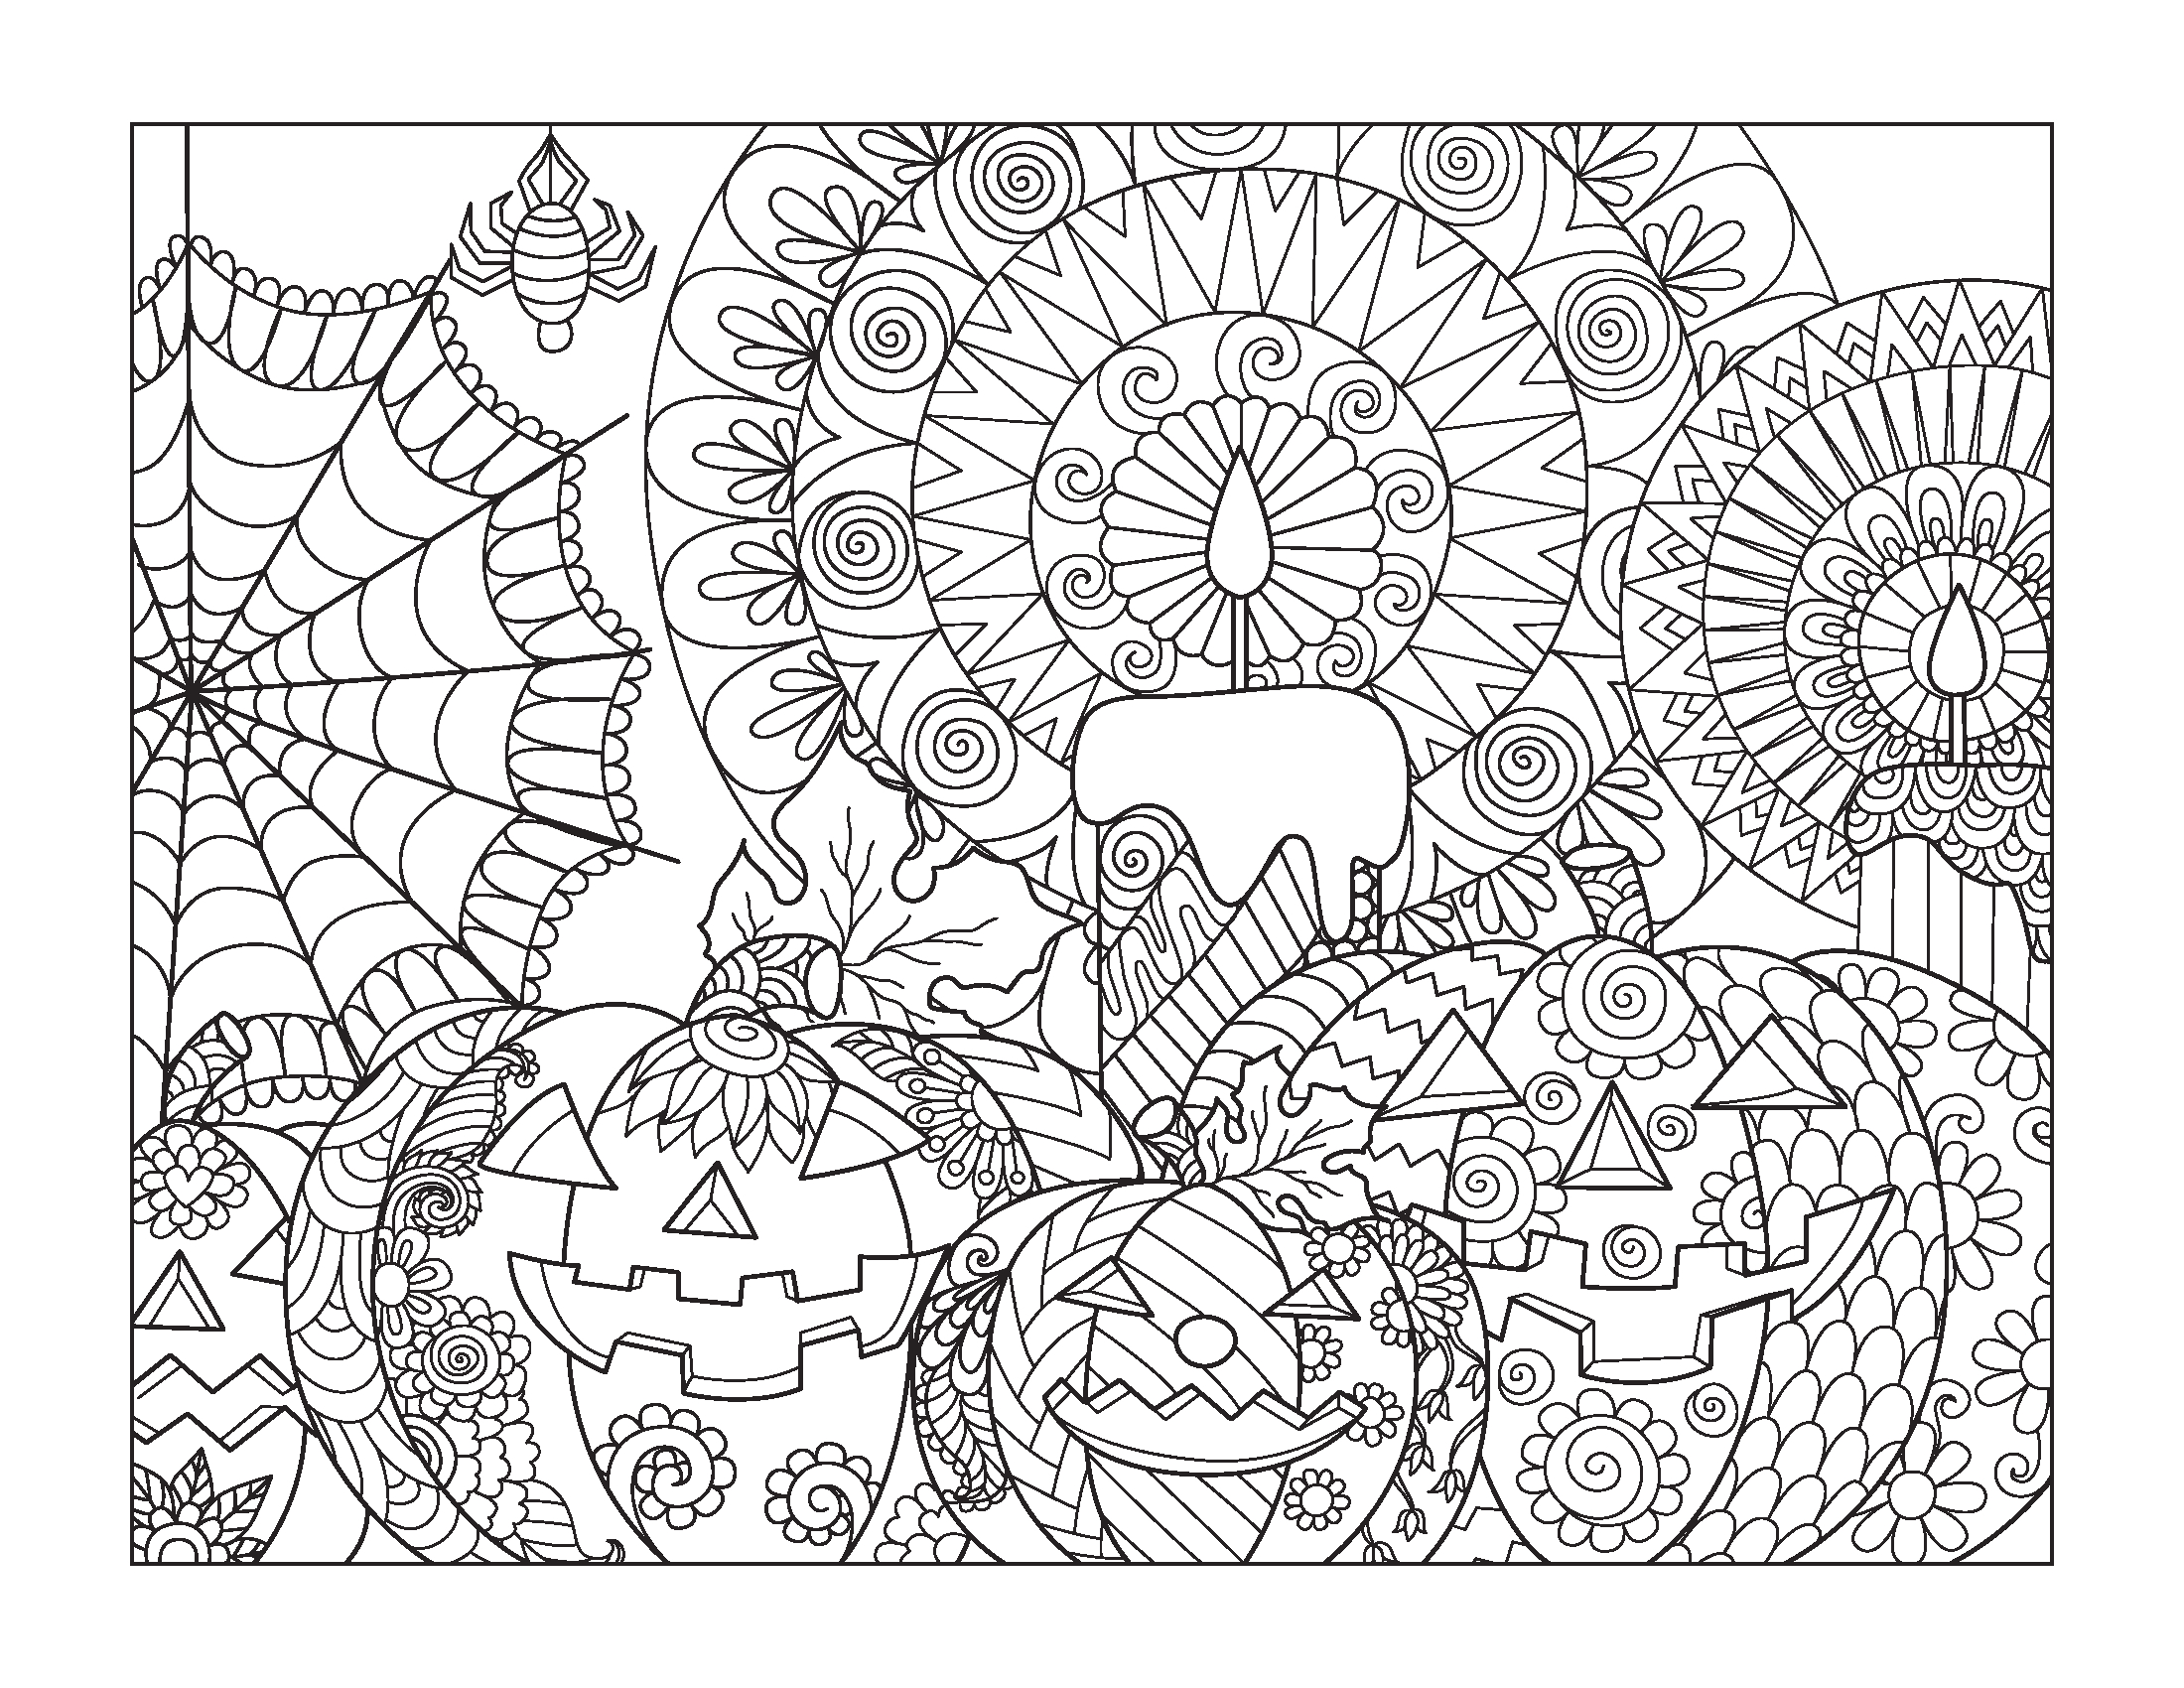 Free Printable Halloween Coloring Pages for Older Kids Halloween Coloring Pages for Older Kids Gift Of Curiosity